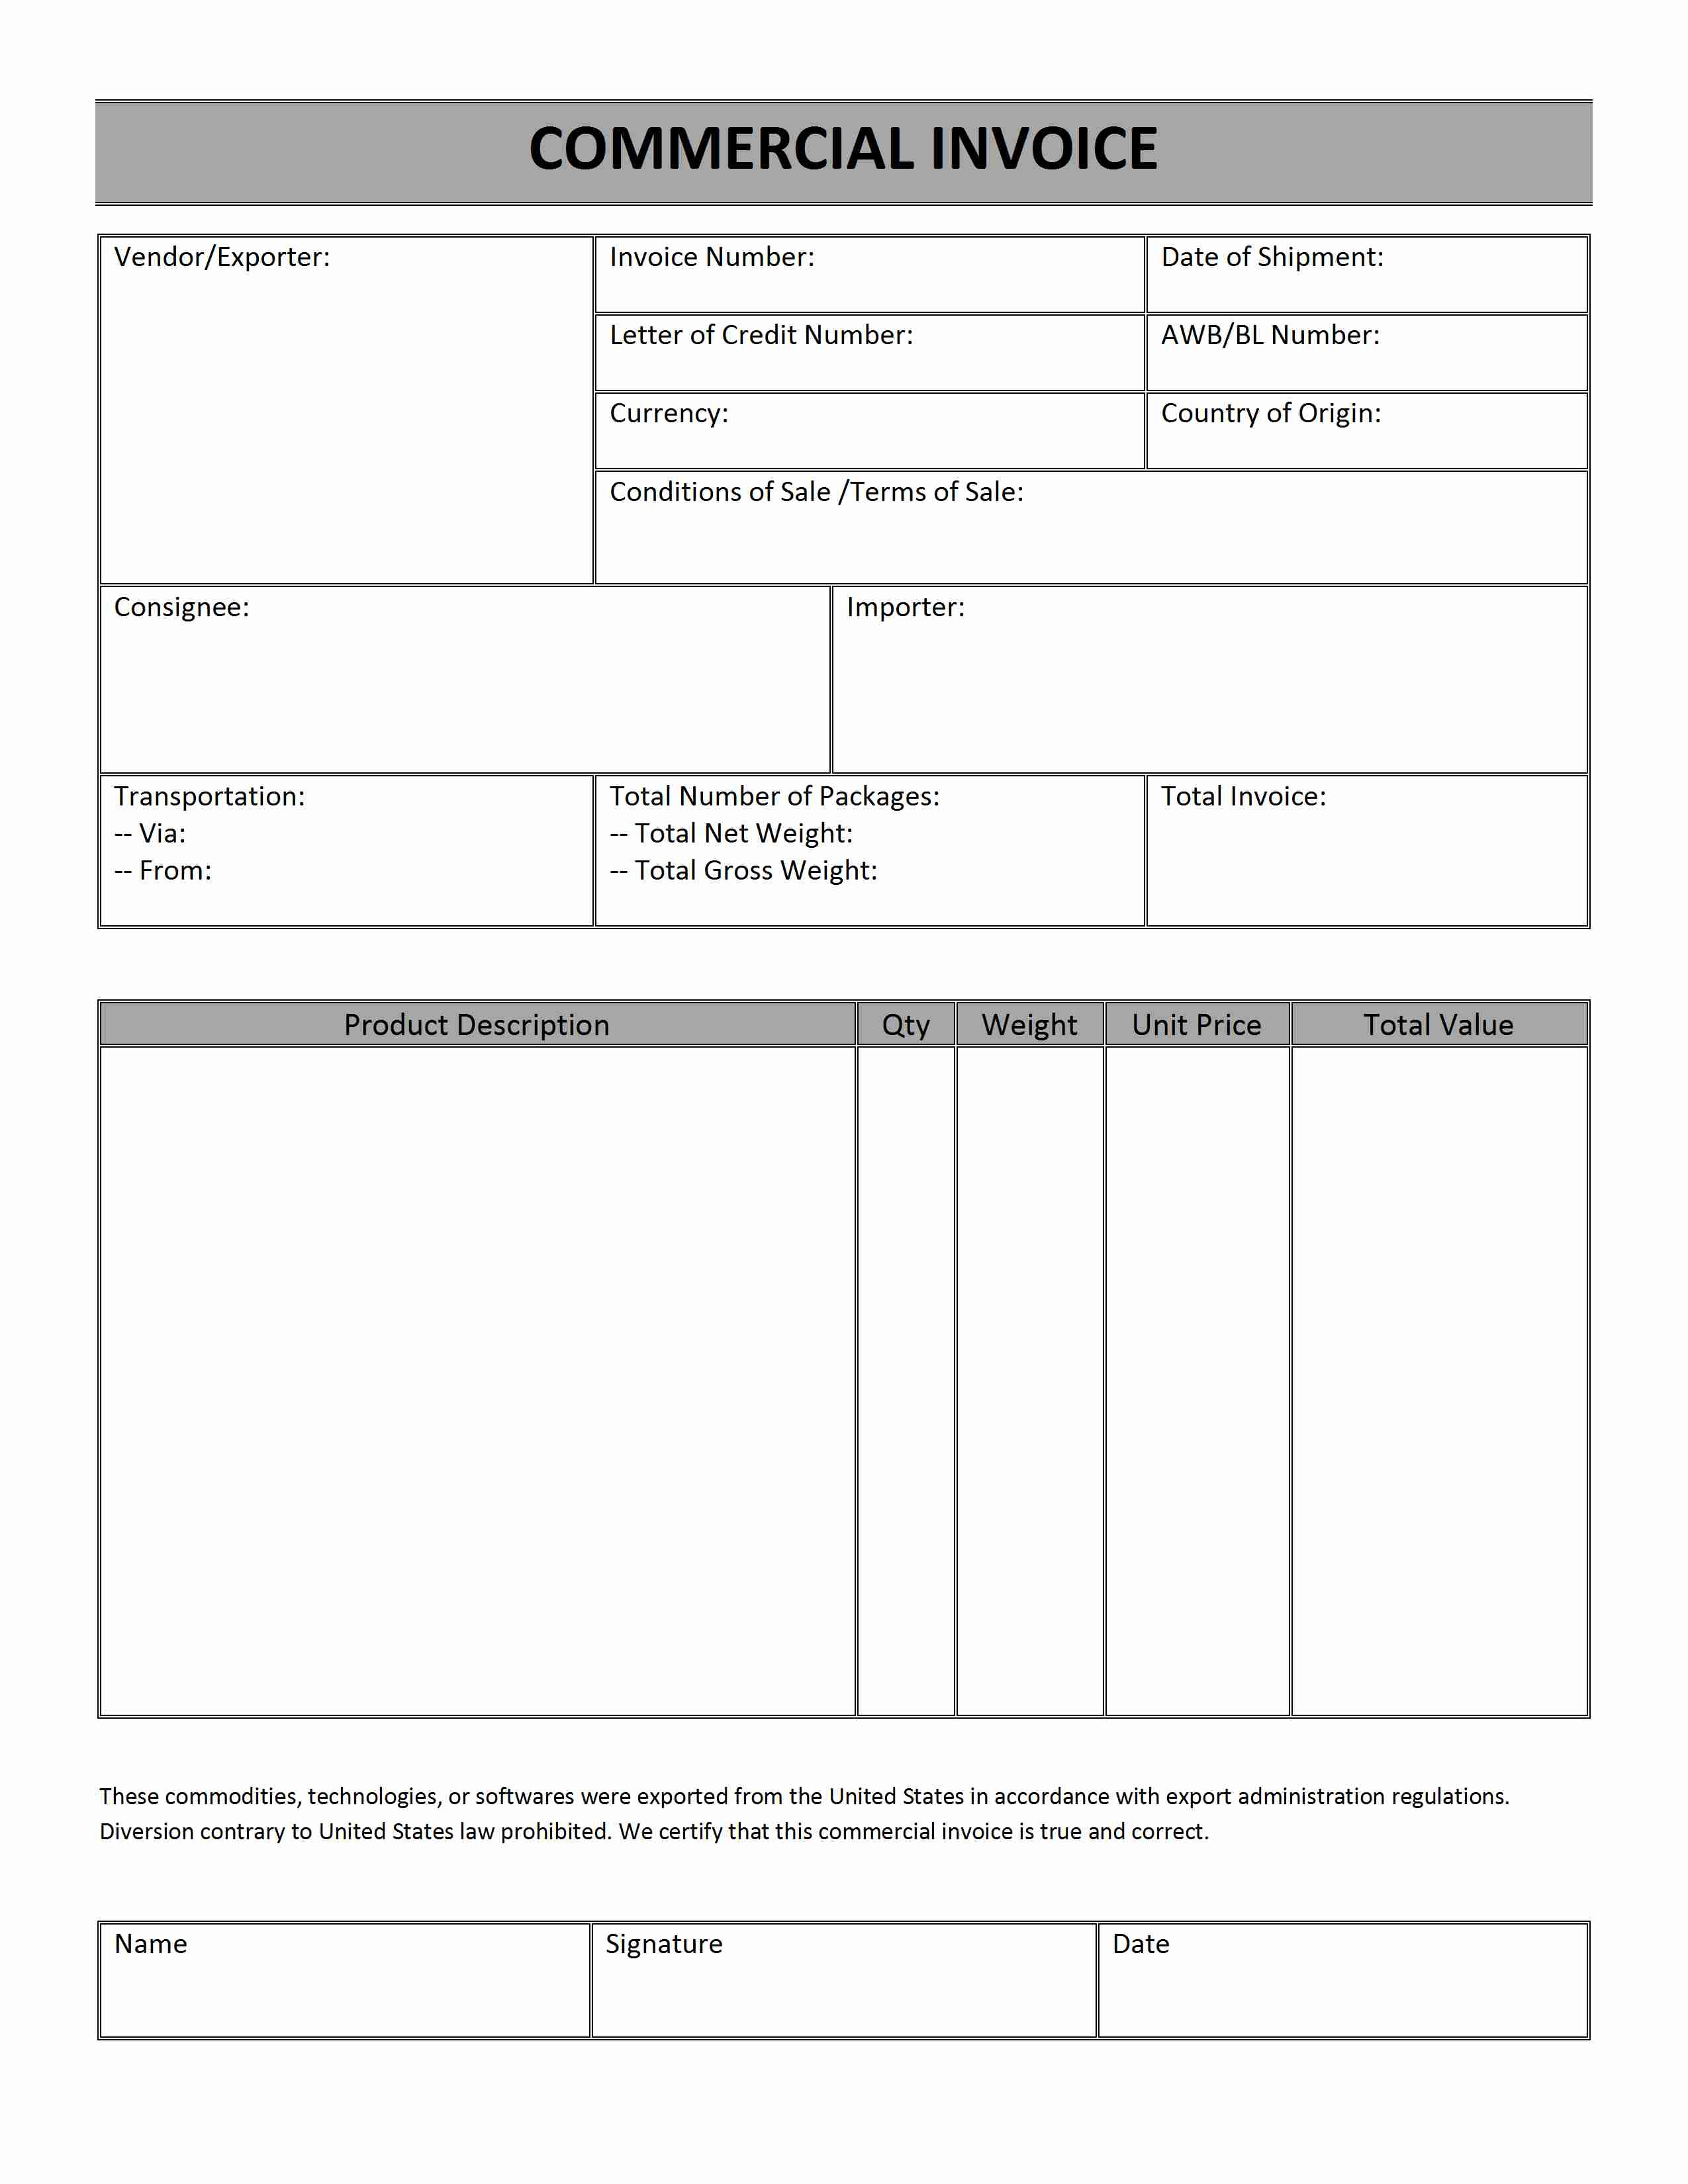 Maidofhonortoastus  Pretty Printable Sales Invoice Simple Invoice Form Free Invoice  With Lovely Printable Receipt Free  Free Printable Raffle Tickets  Receipt   Printable With Attractive Free Rental Receipt Template Also Free Receipt Software In Addition Cash Payment Receipt Template And Palm Beach County Tax Receipt As Well As Bill Receipts Additionally Rental Receipt Sample From Happytomco With Maidofhonortoastus  Lovely Printable Sales Invoice Simple Invoice Form Free Invoice  With Attractive Printable Receipt Free  Free Printable Raffle Tickets  Receipt   Printable And Pretty Free Rental Receipt Template Also Free Receipt Software In Addition Cash Payment Receipt Template From Happytomco